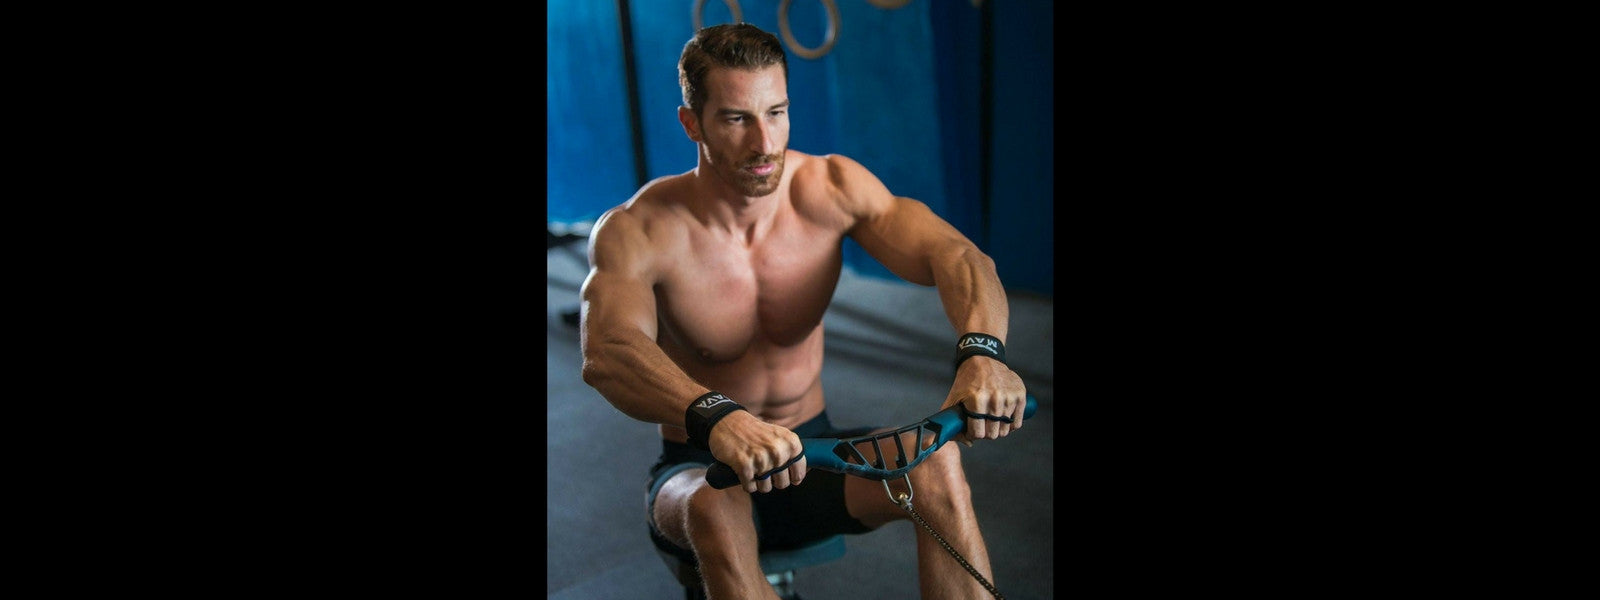 Build Up Muscle and Torch Calories with these 7 Amazing Cable Exercises